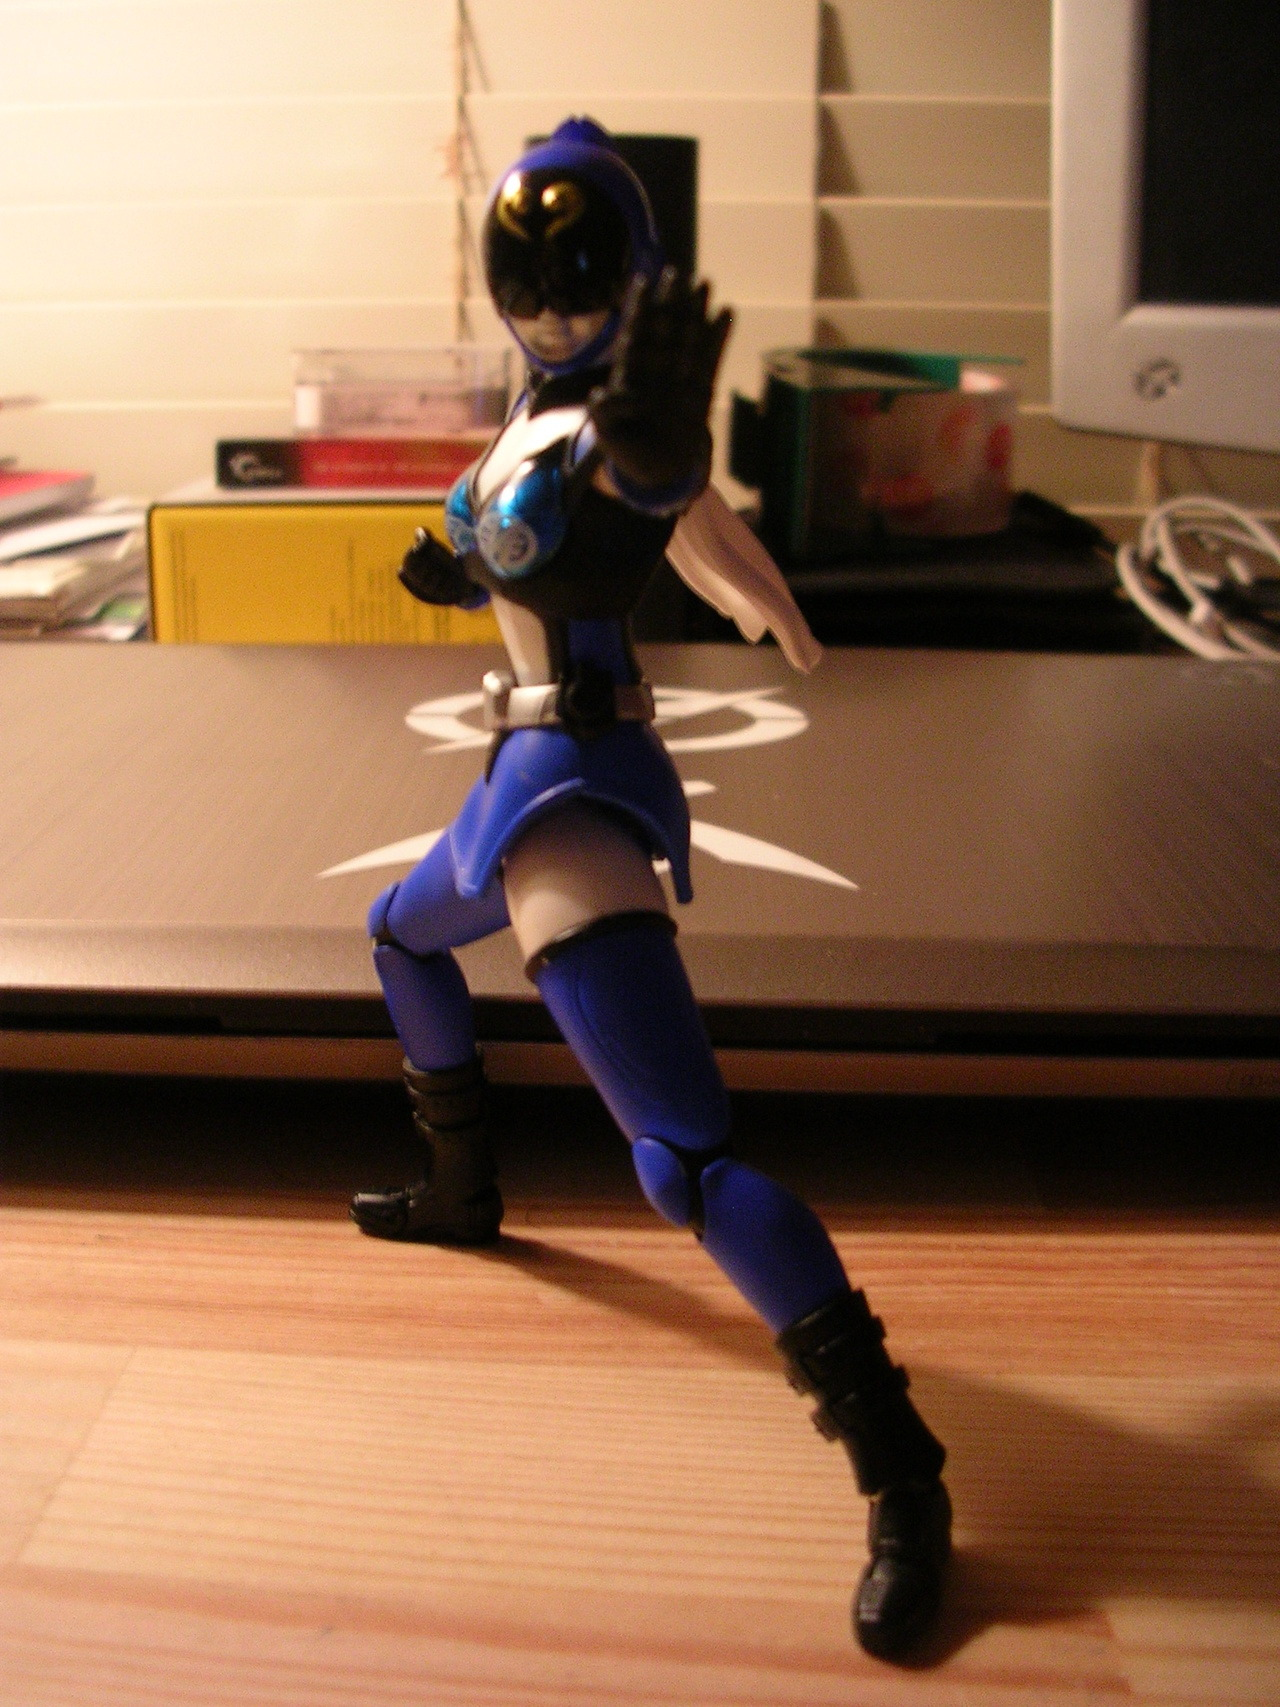 S.H. Figuarts Akiba Blue. Review tomorrow.